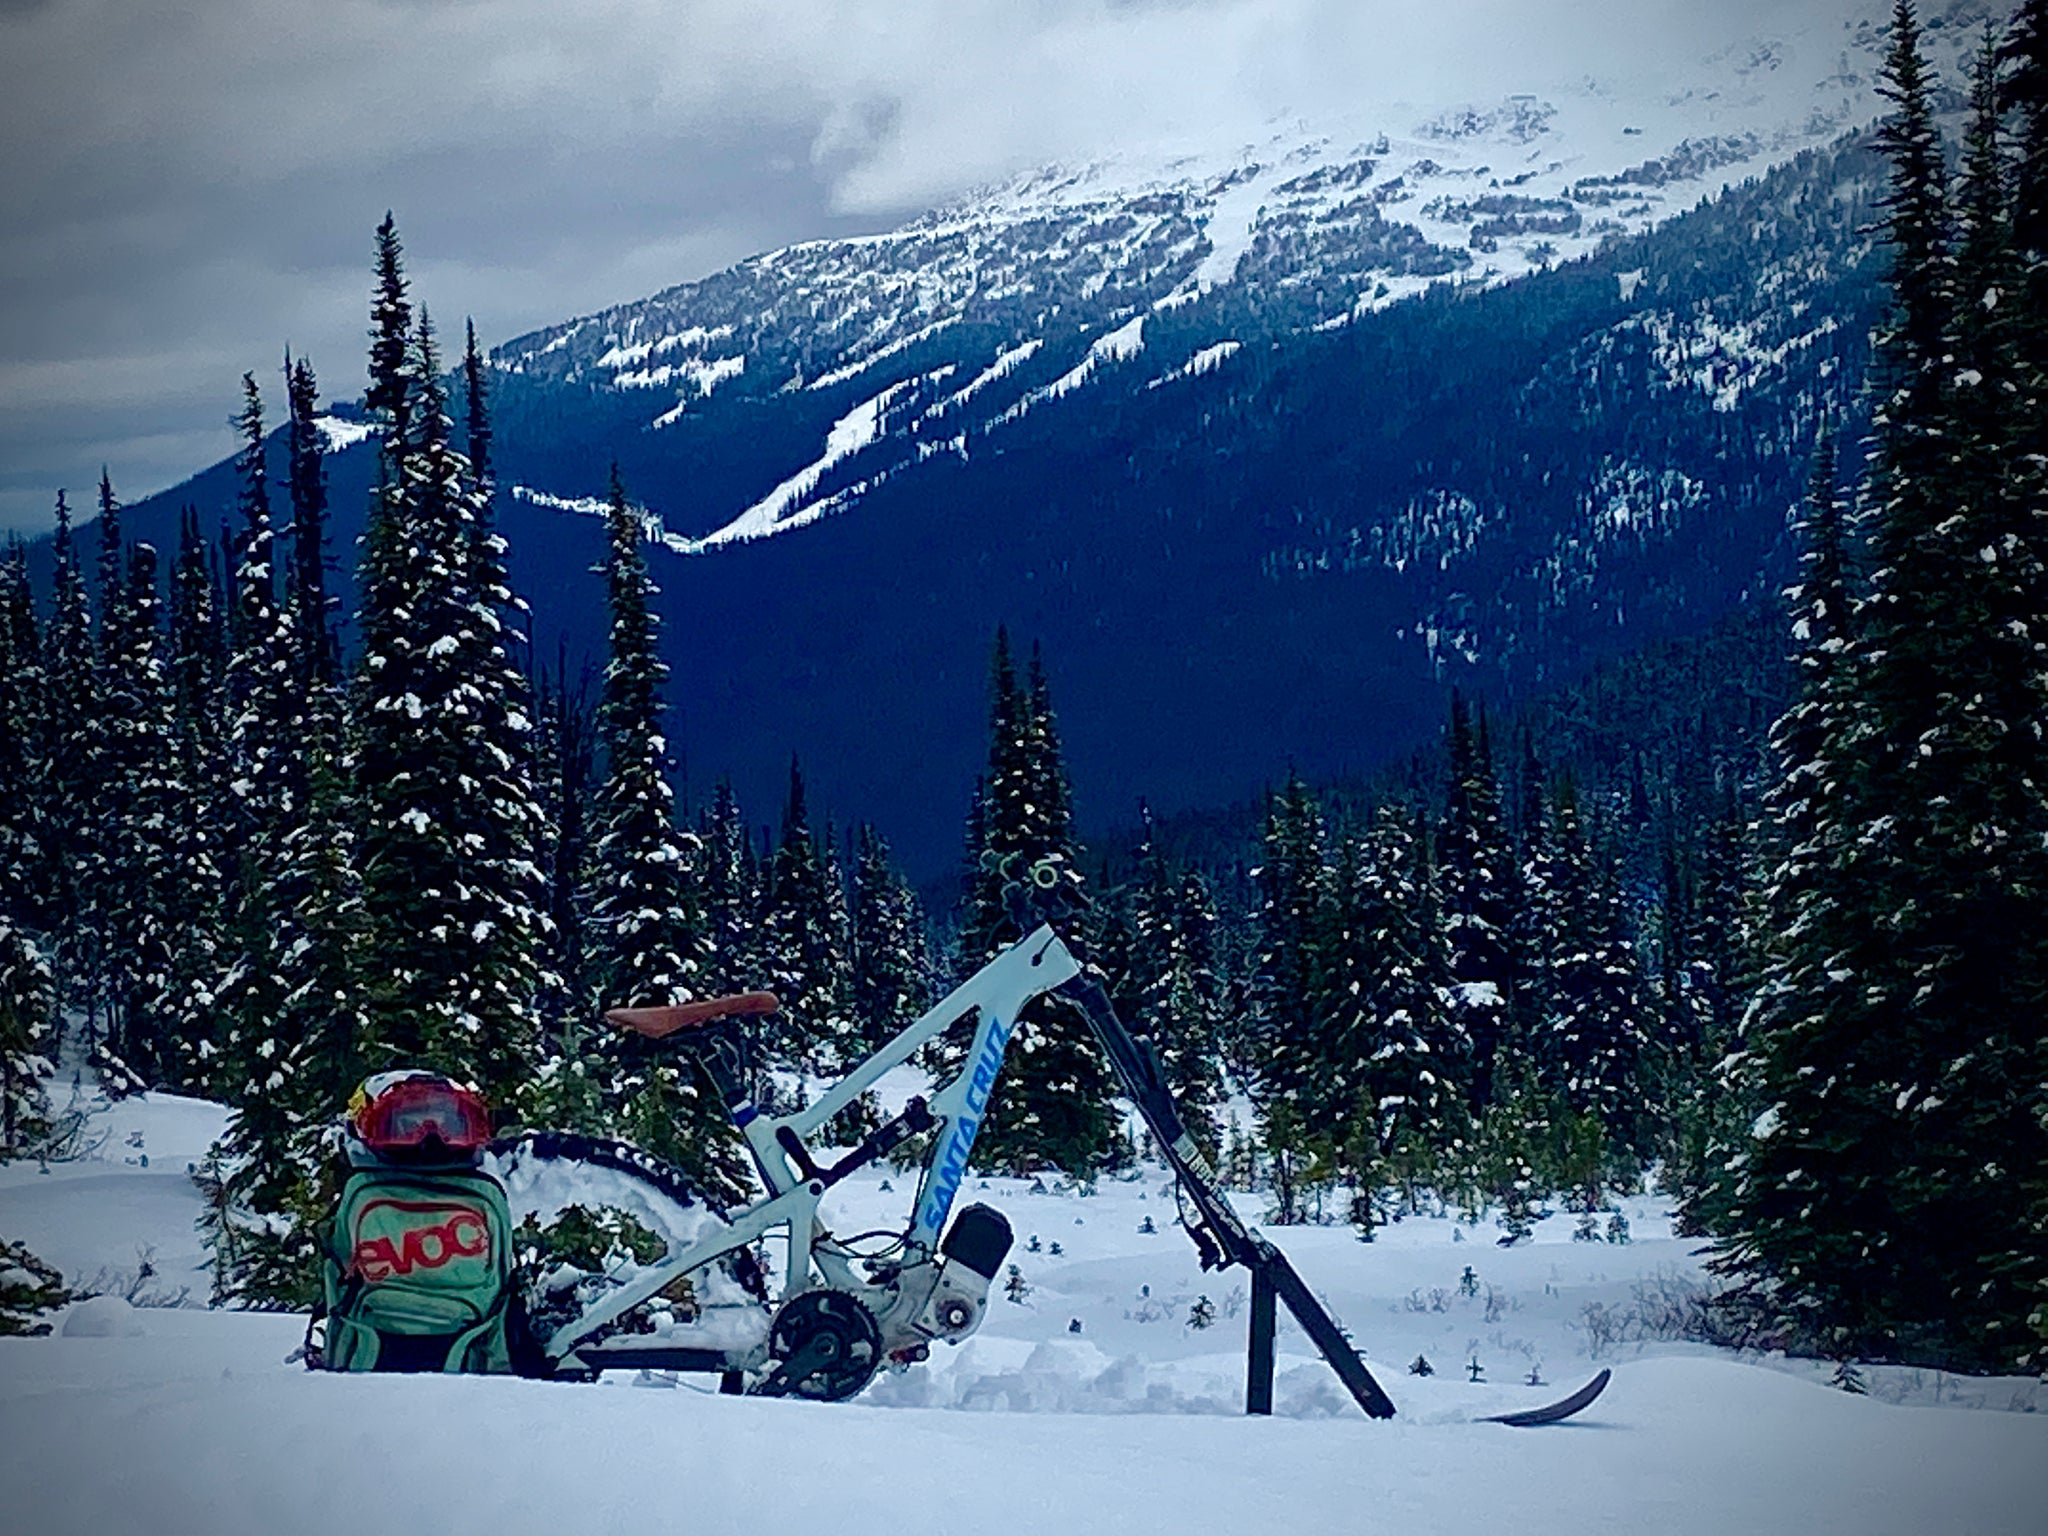 Whistler SkiEride Adventure, Dec 6, 2019